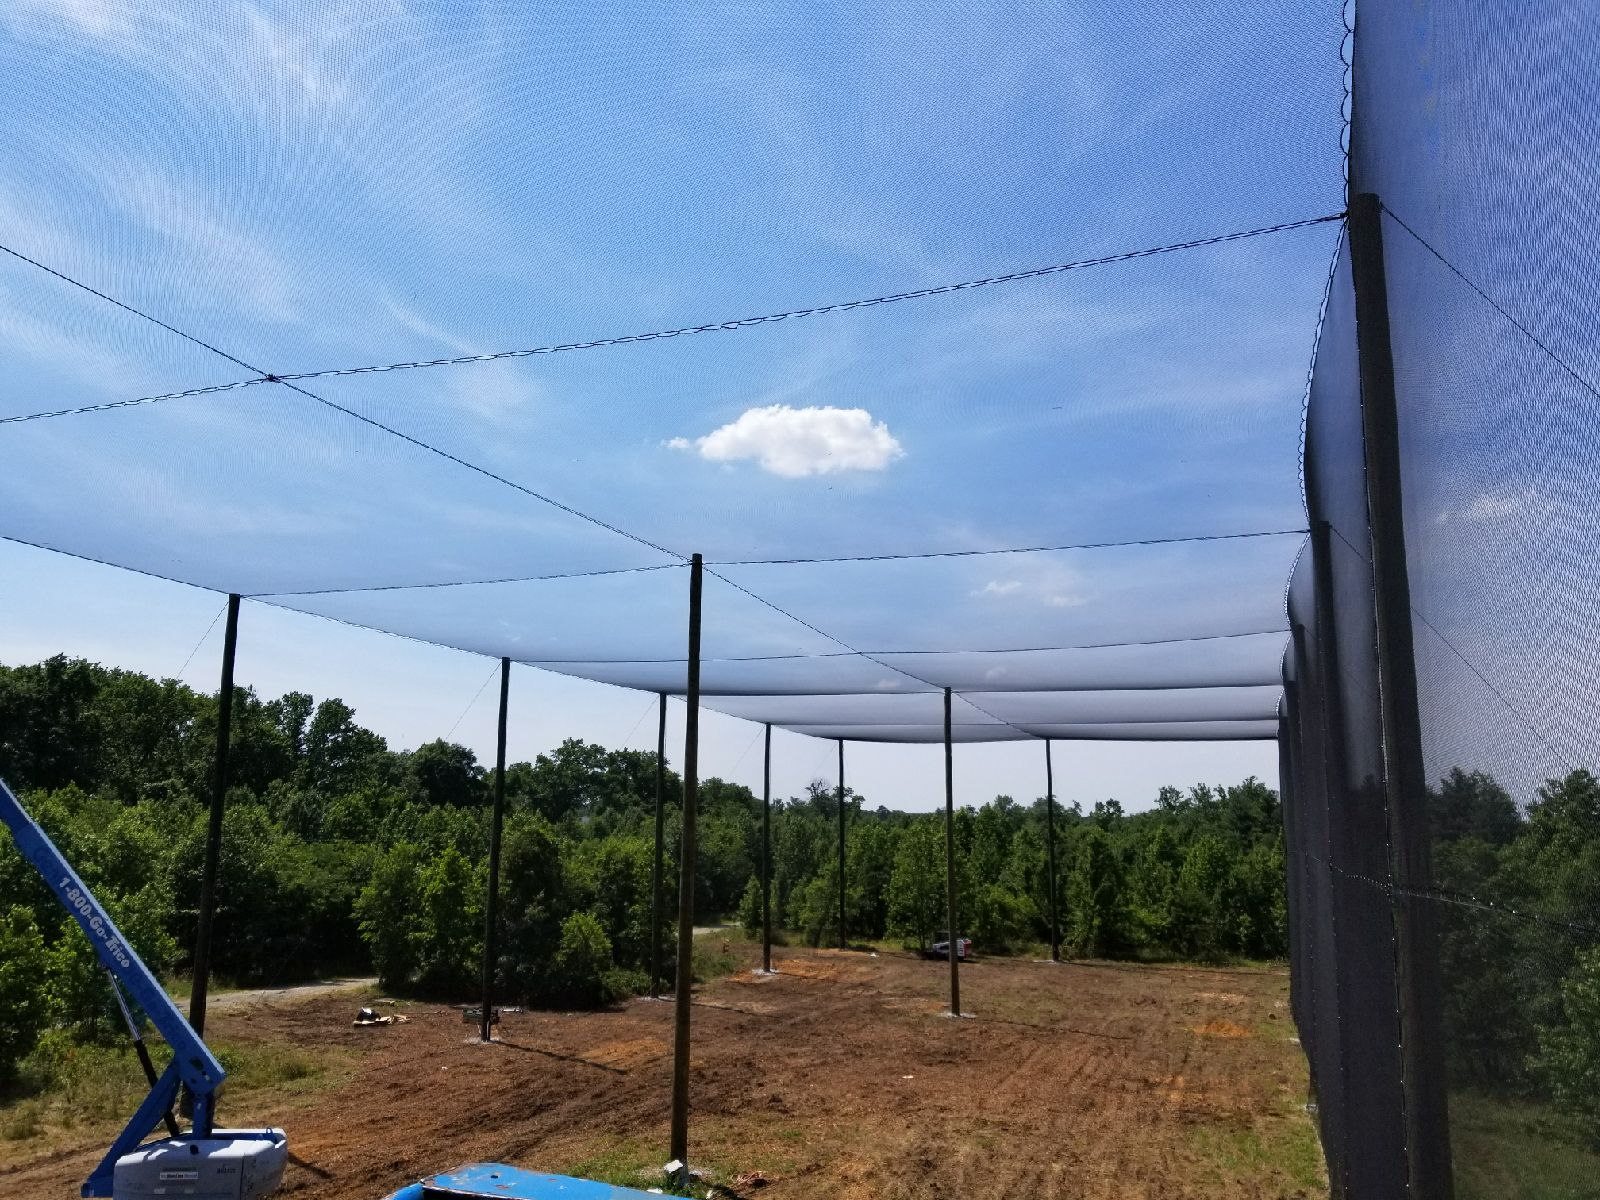 Netted UAS (Unmanned Aerial Systems) Flight Area/Drone Enclosure- University of Maryland